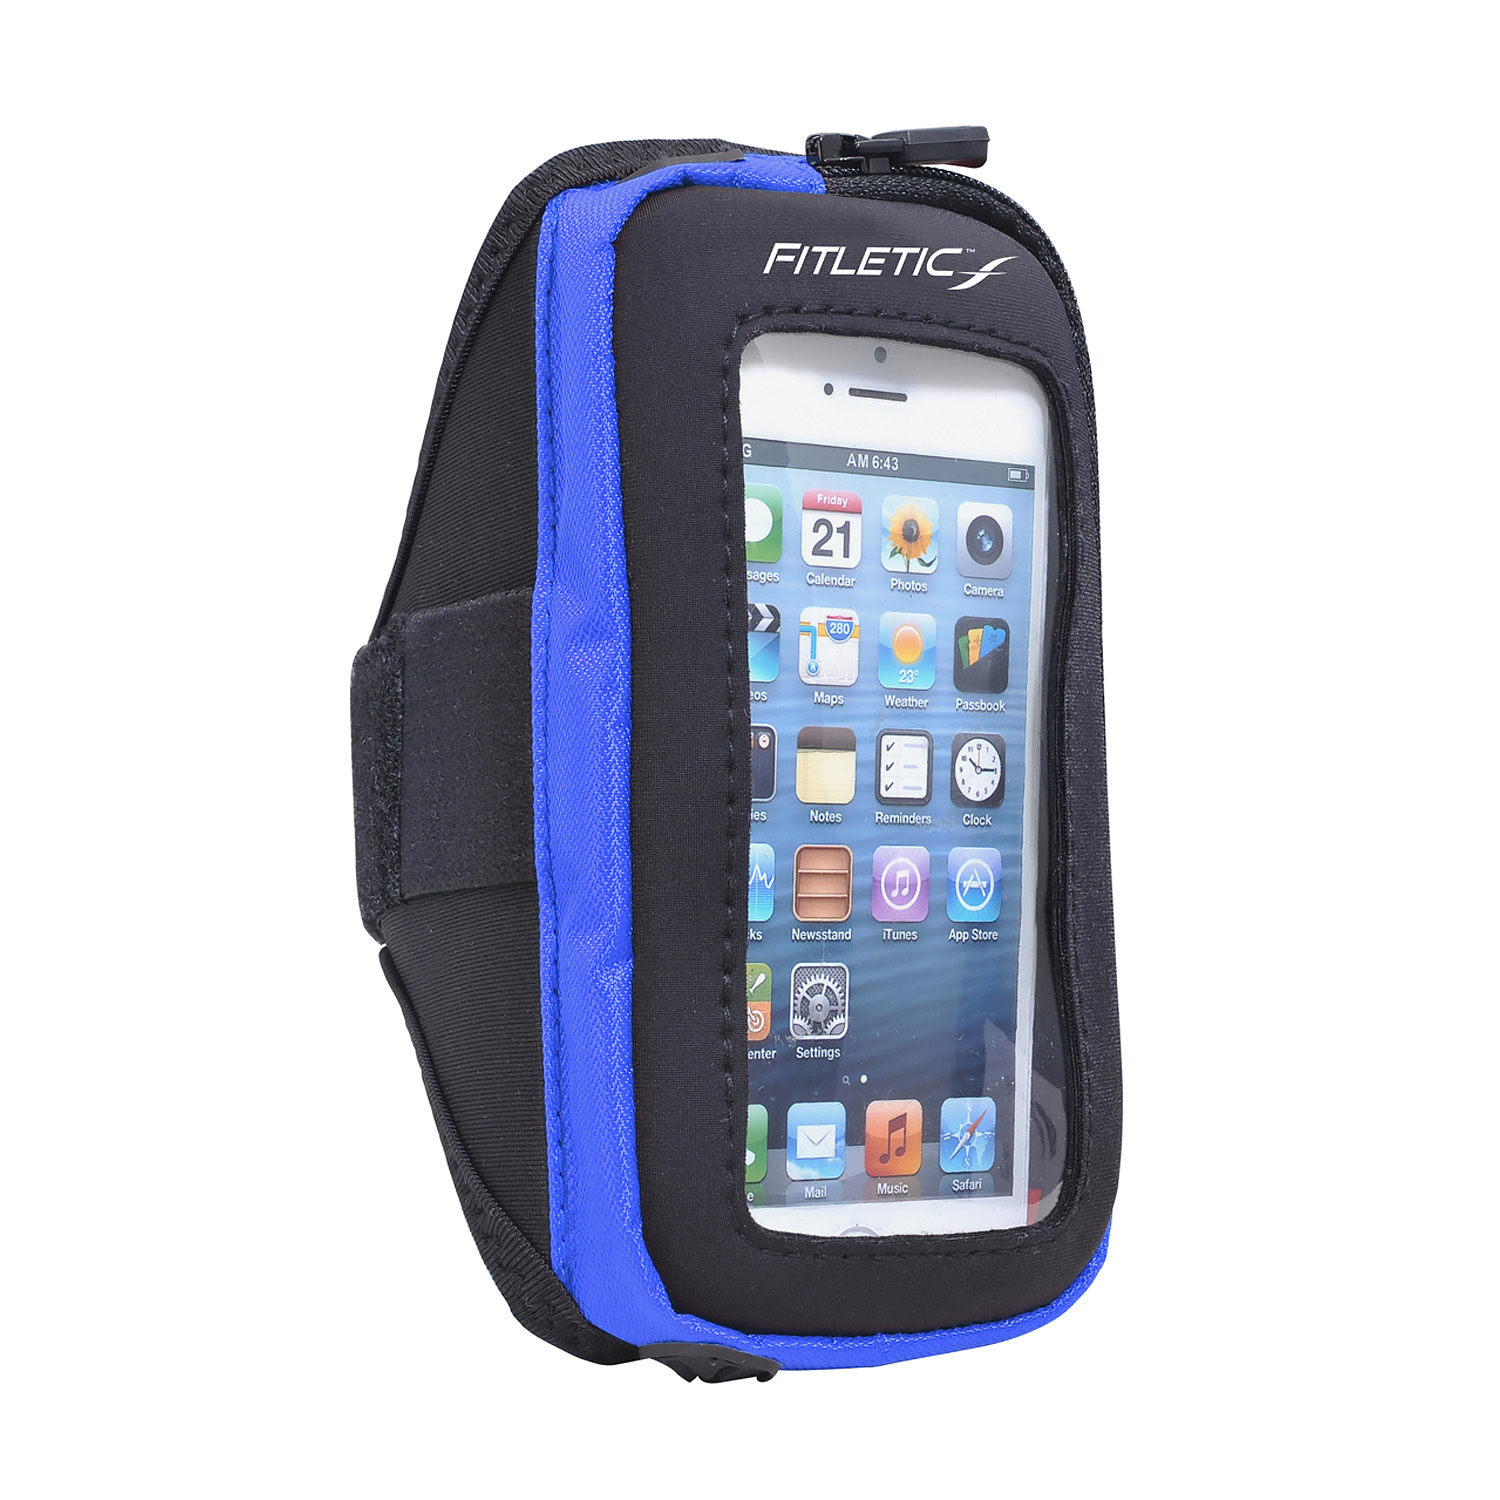 Fitletic Smart Phone Arm Band with Window Black/Blue-L/XL